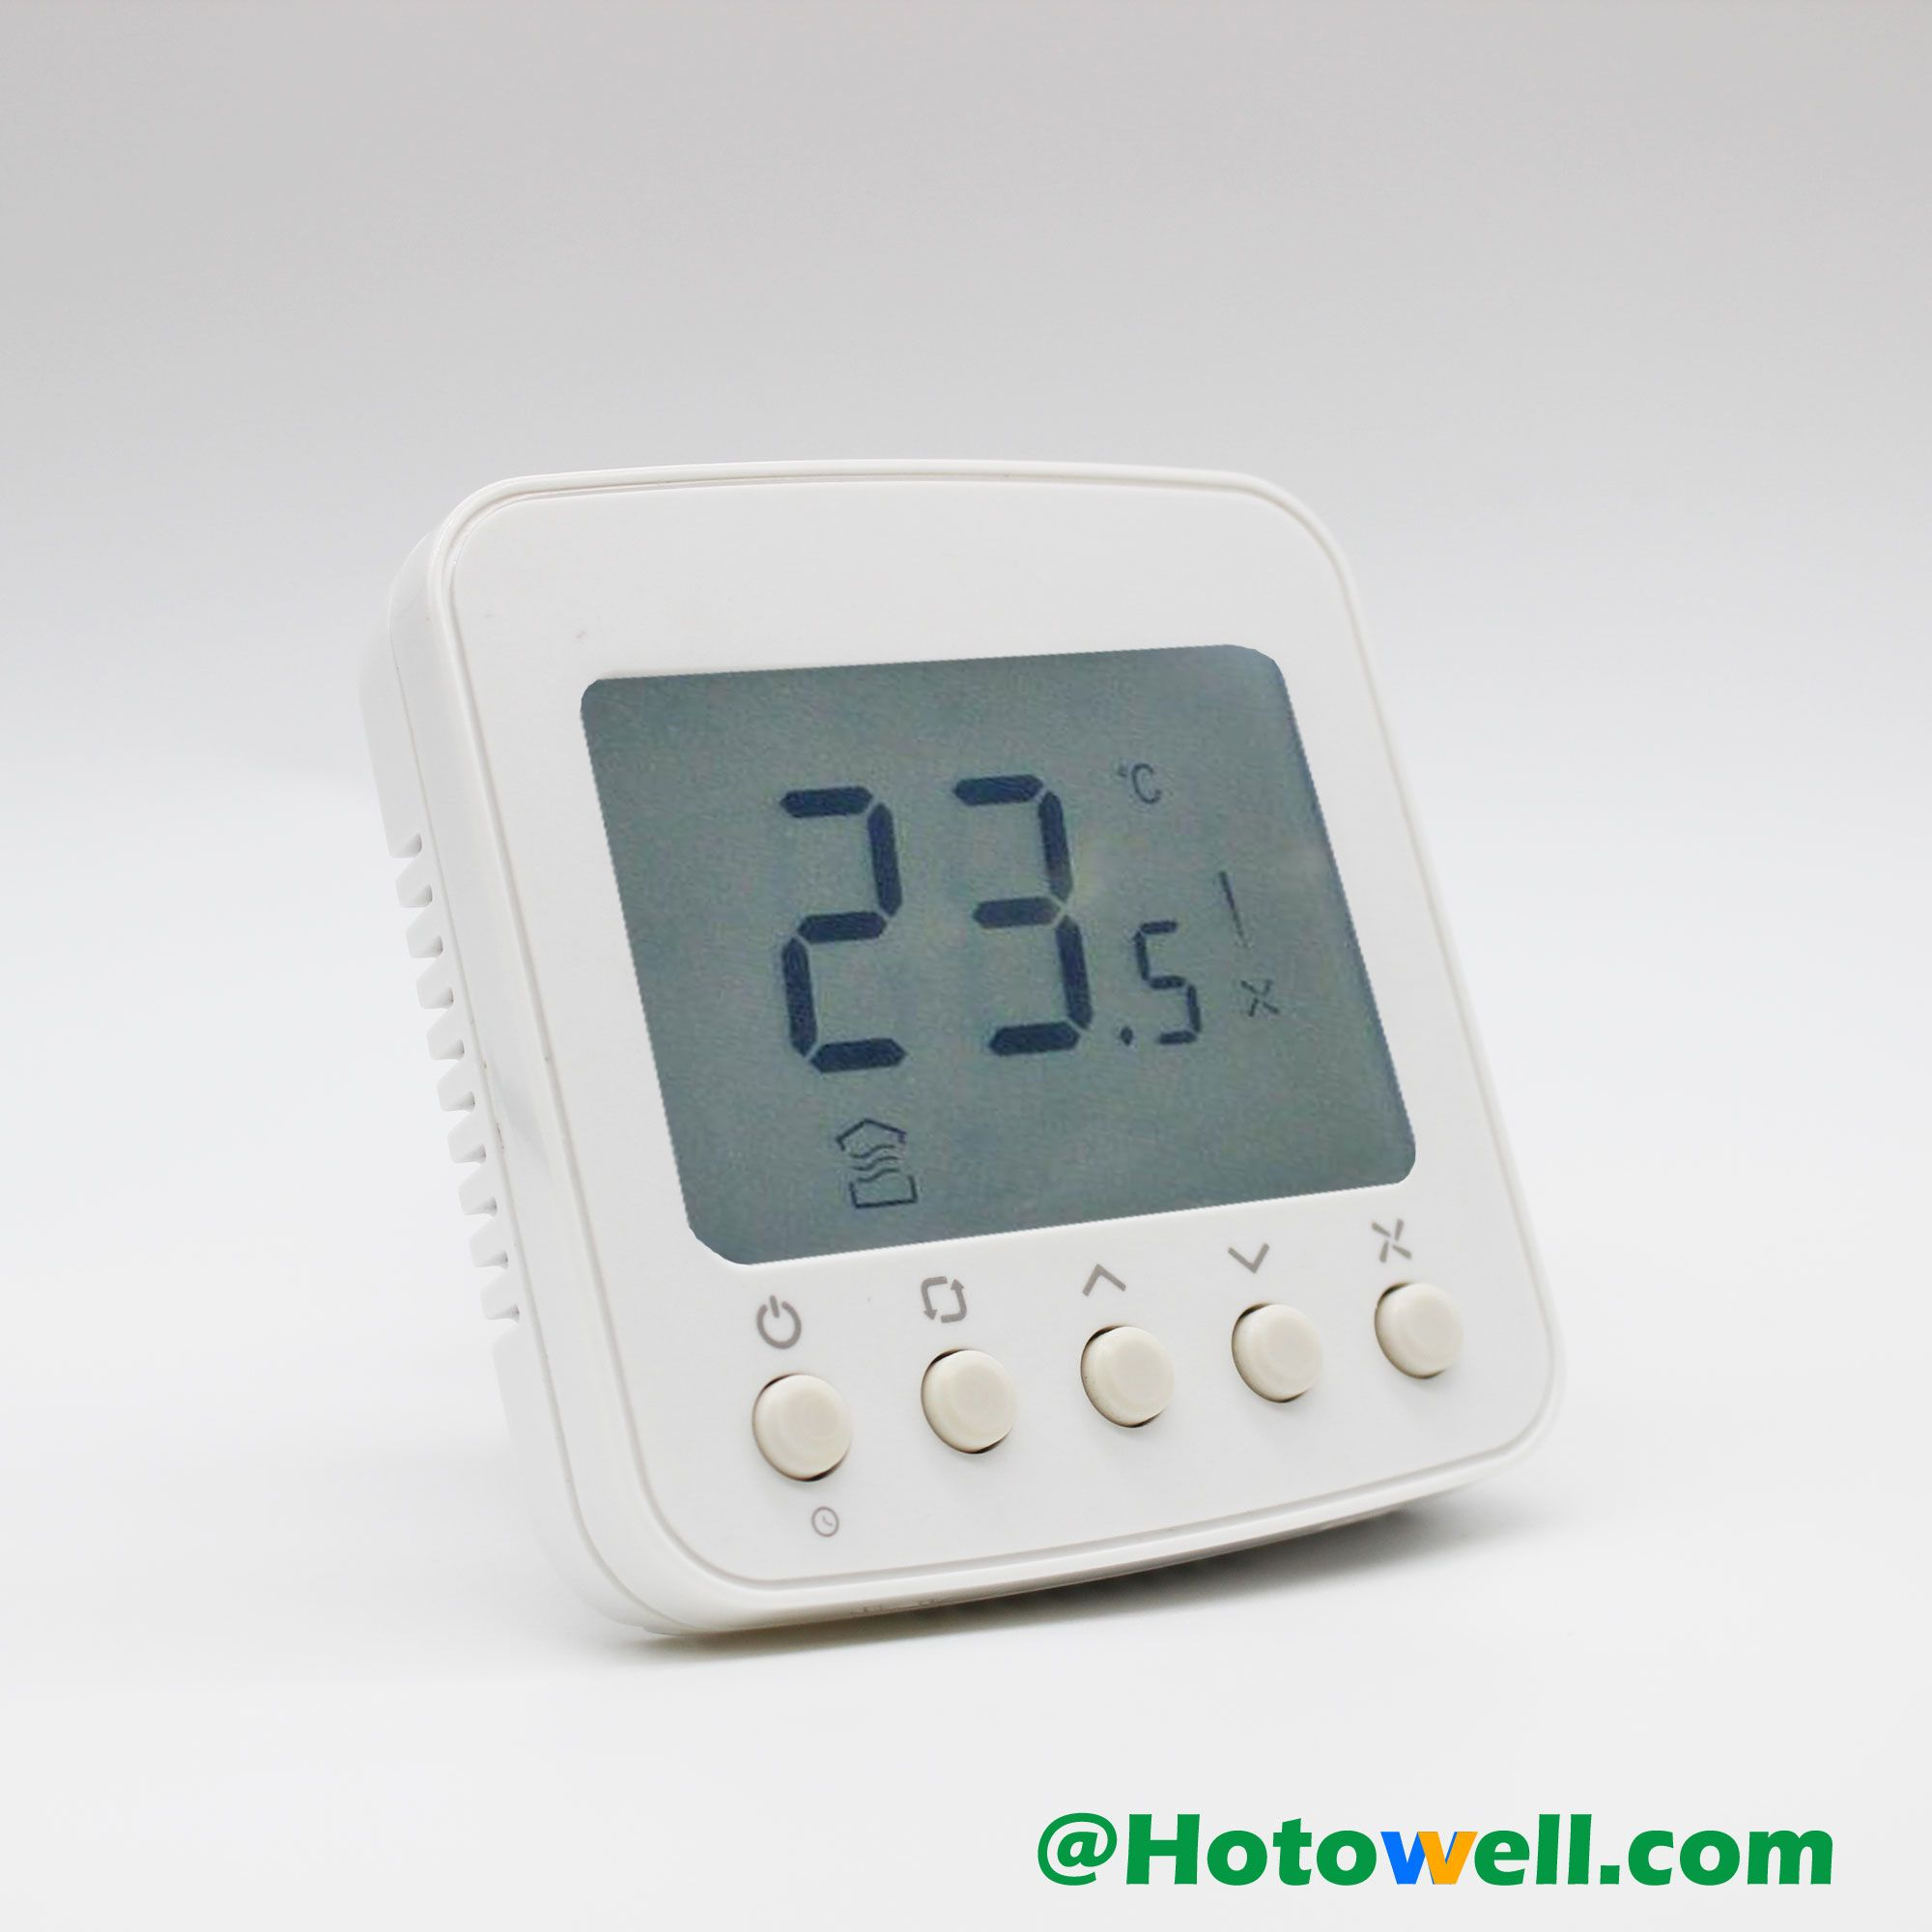 The TF228WN Digital Thermostat Is Designed For 3-speed Fan